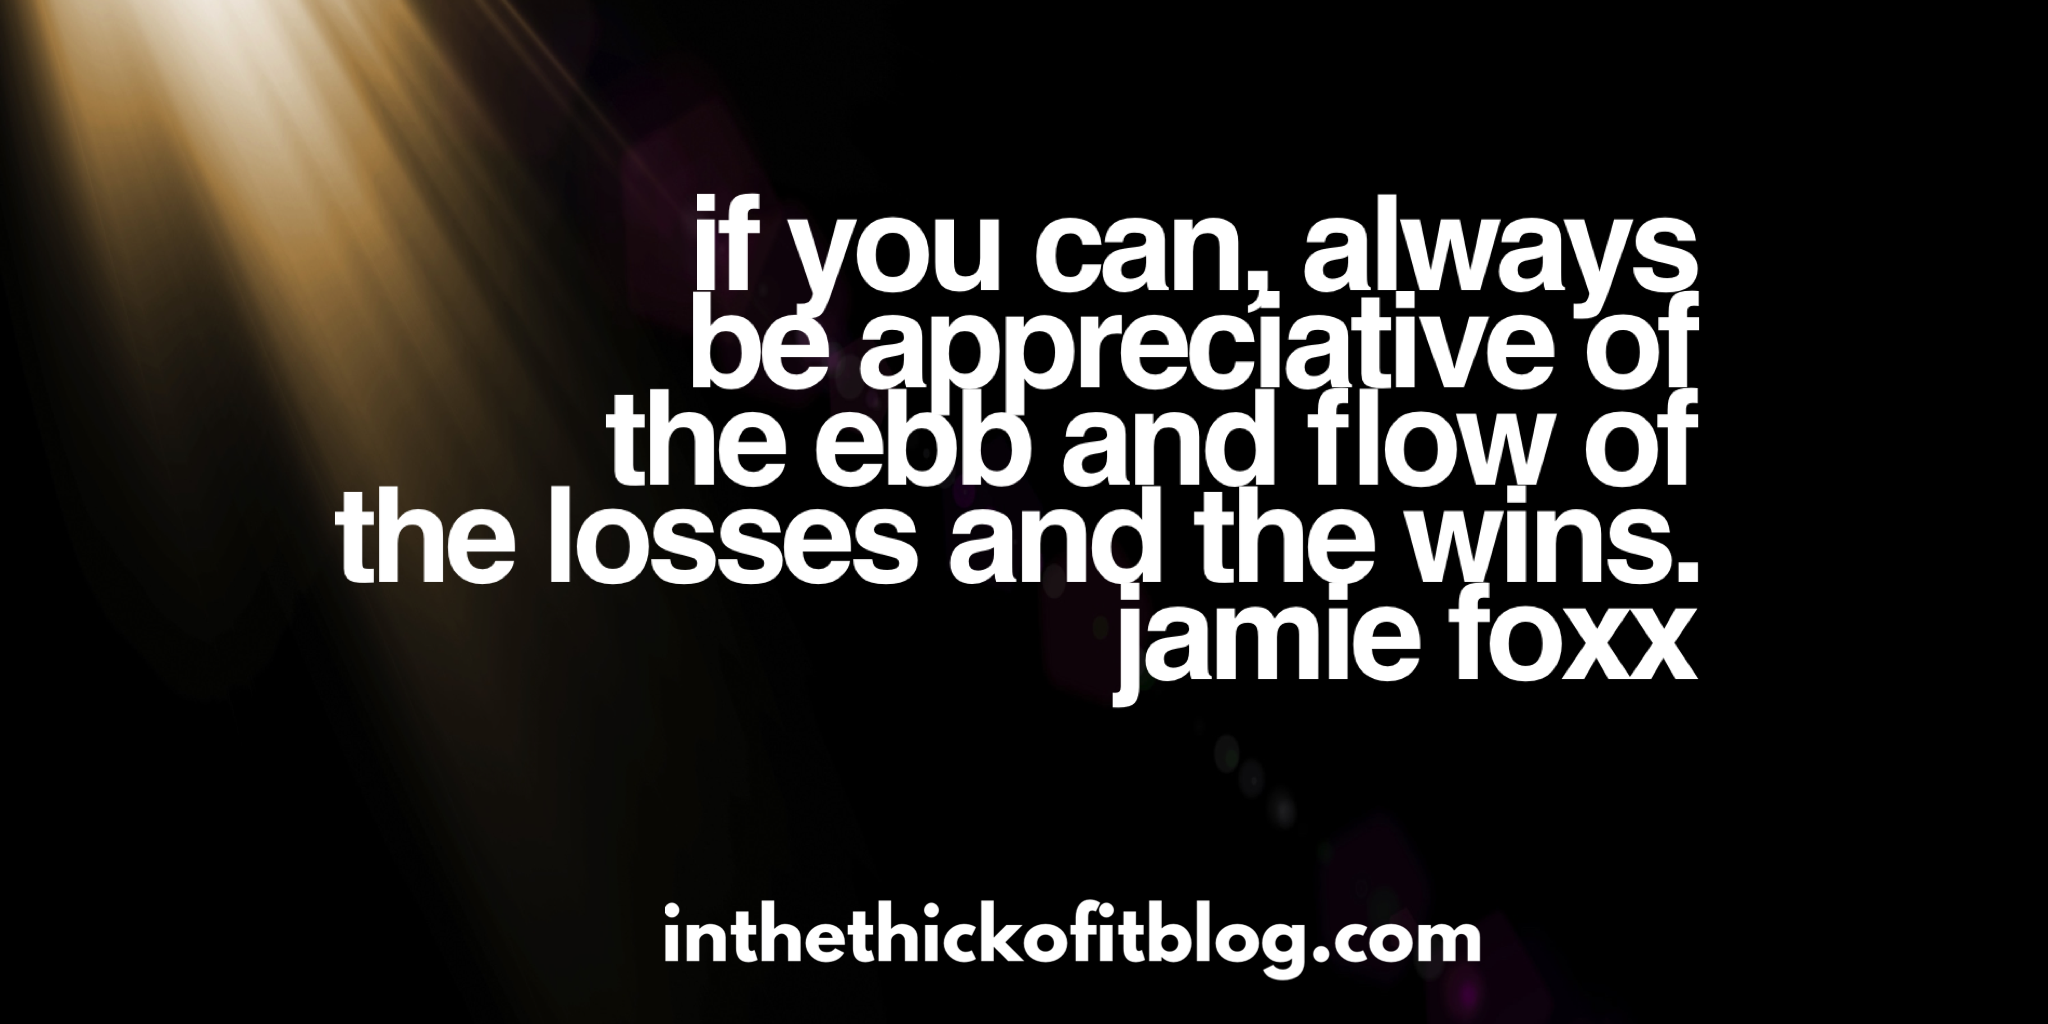 New perspective on embracing your losses.